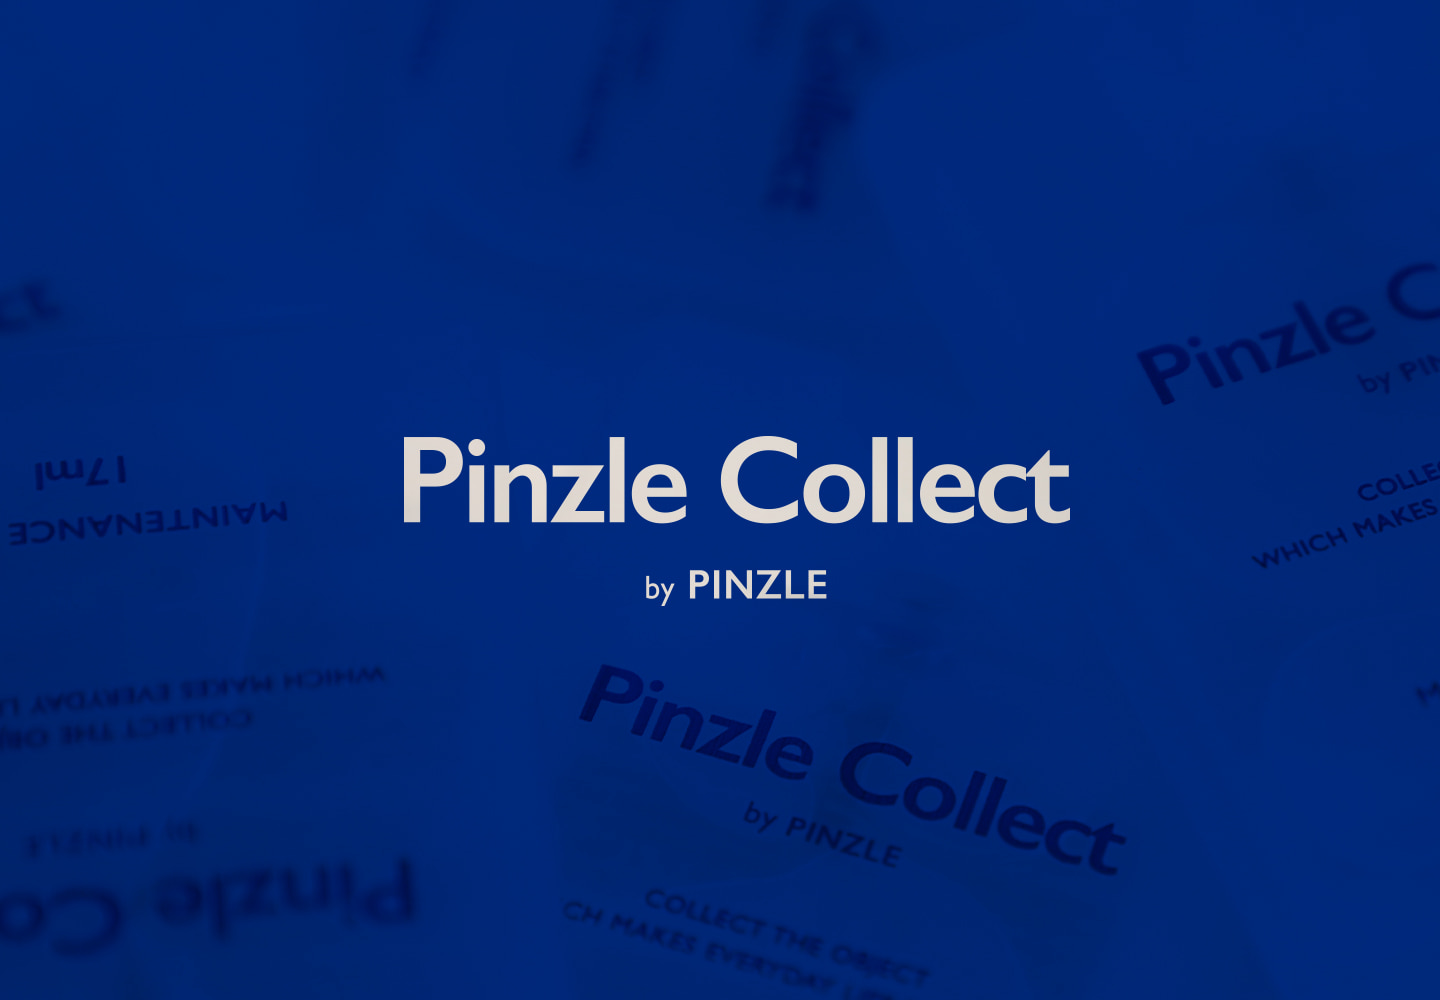 Pinzle Collect by PINZLE